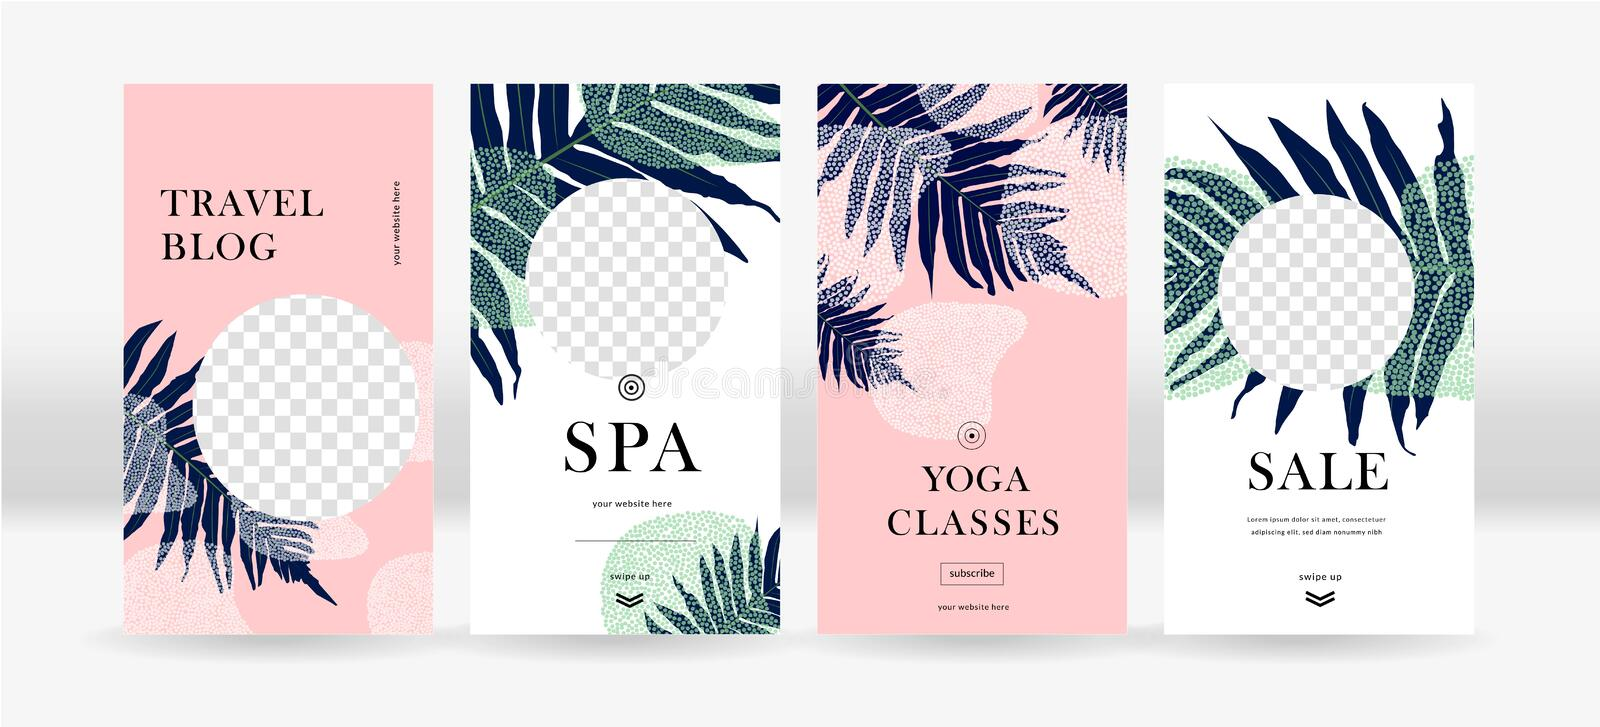 Design backgrounds for social media. Trendy tropical templates for social topical networks stories vector illustration